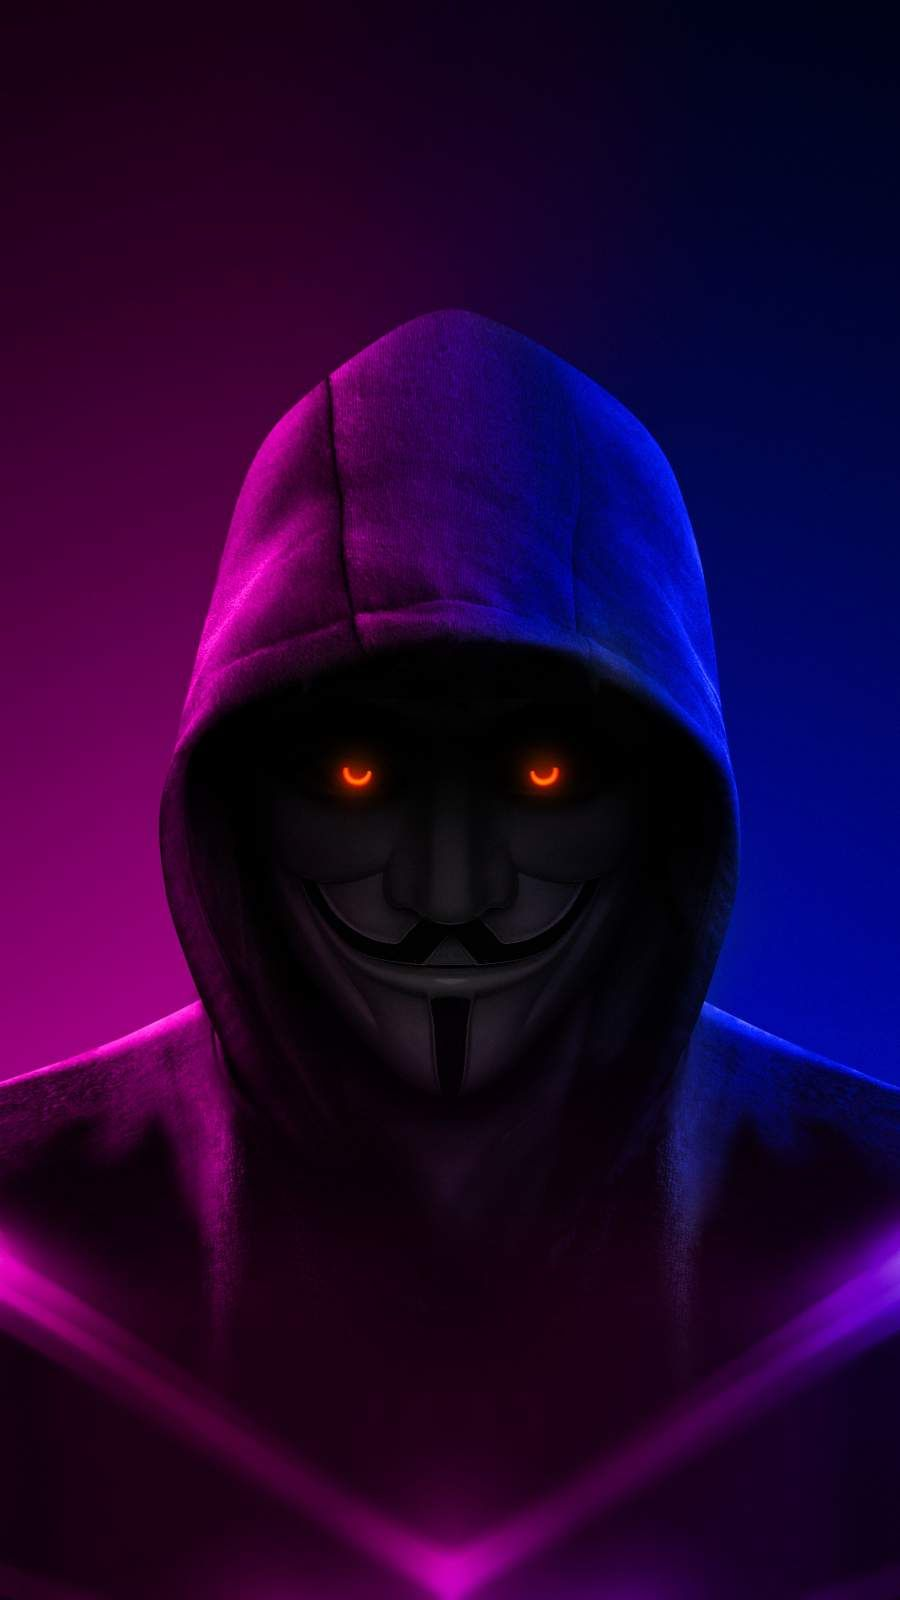 Hoodie Anonymous iPhone Wallpaper - iPhone Wallpapers